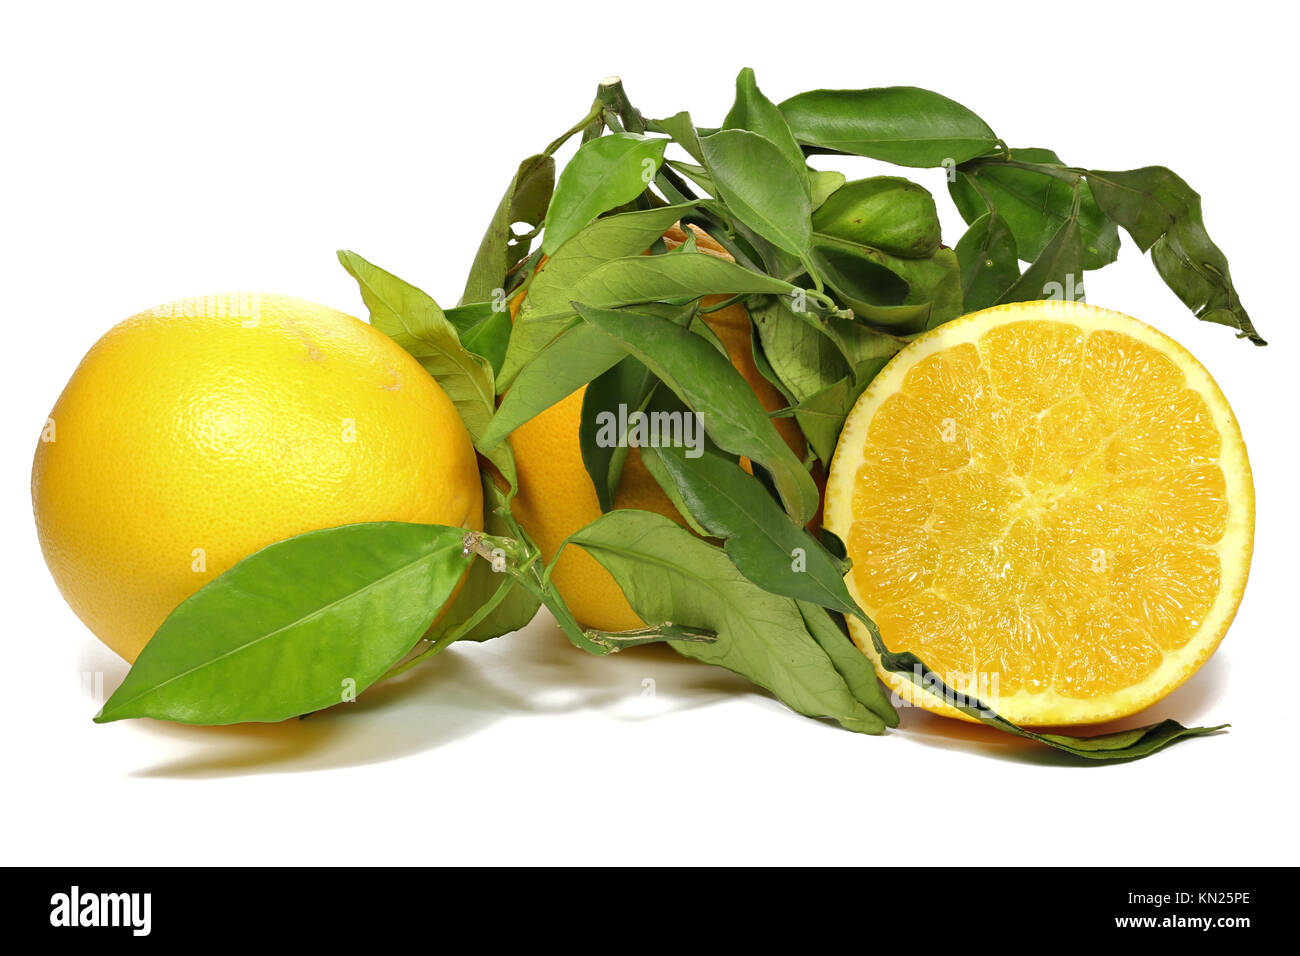 oranges with leaves isolated on white background - Stock Image